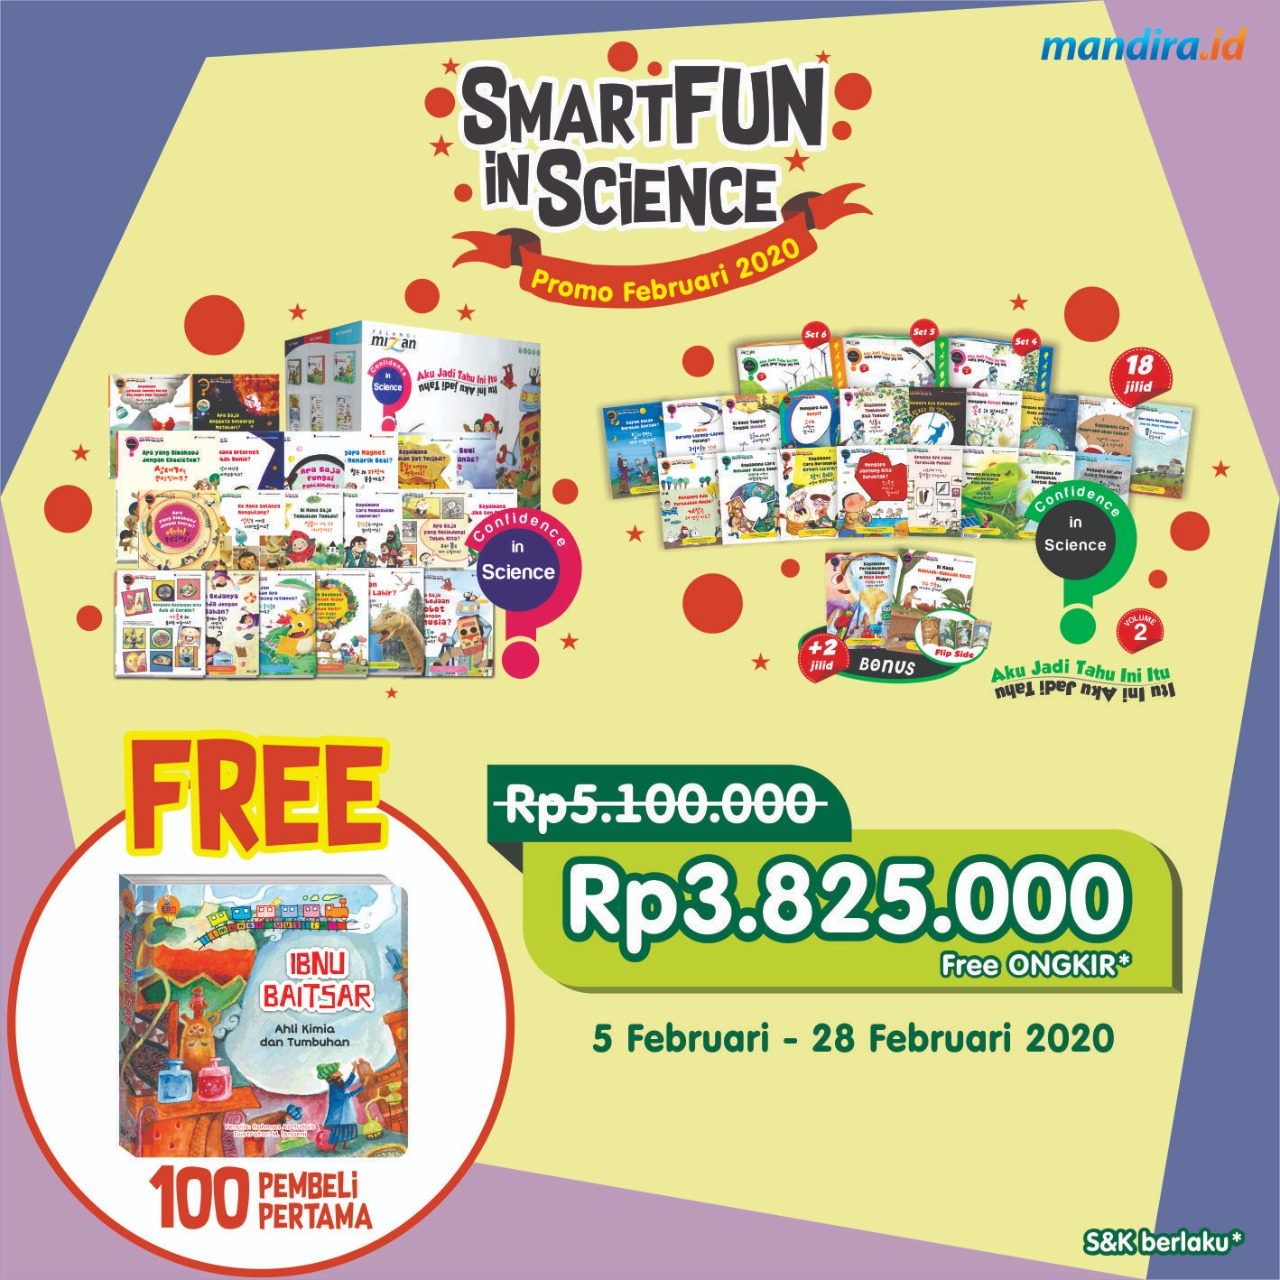 CIS 1 + CIS 2 SMARTFUN FEB 20 (FREE SCIENCE BOOK)